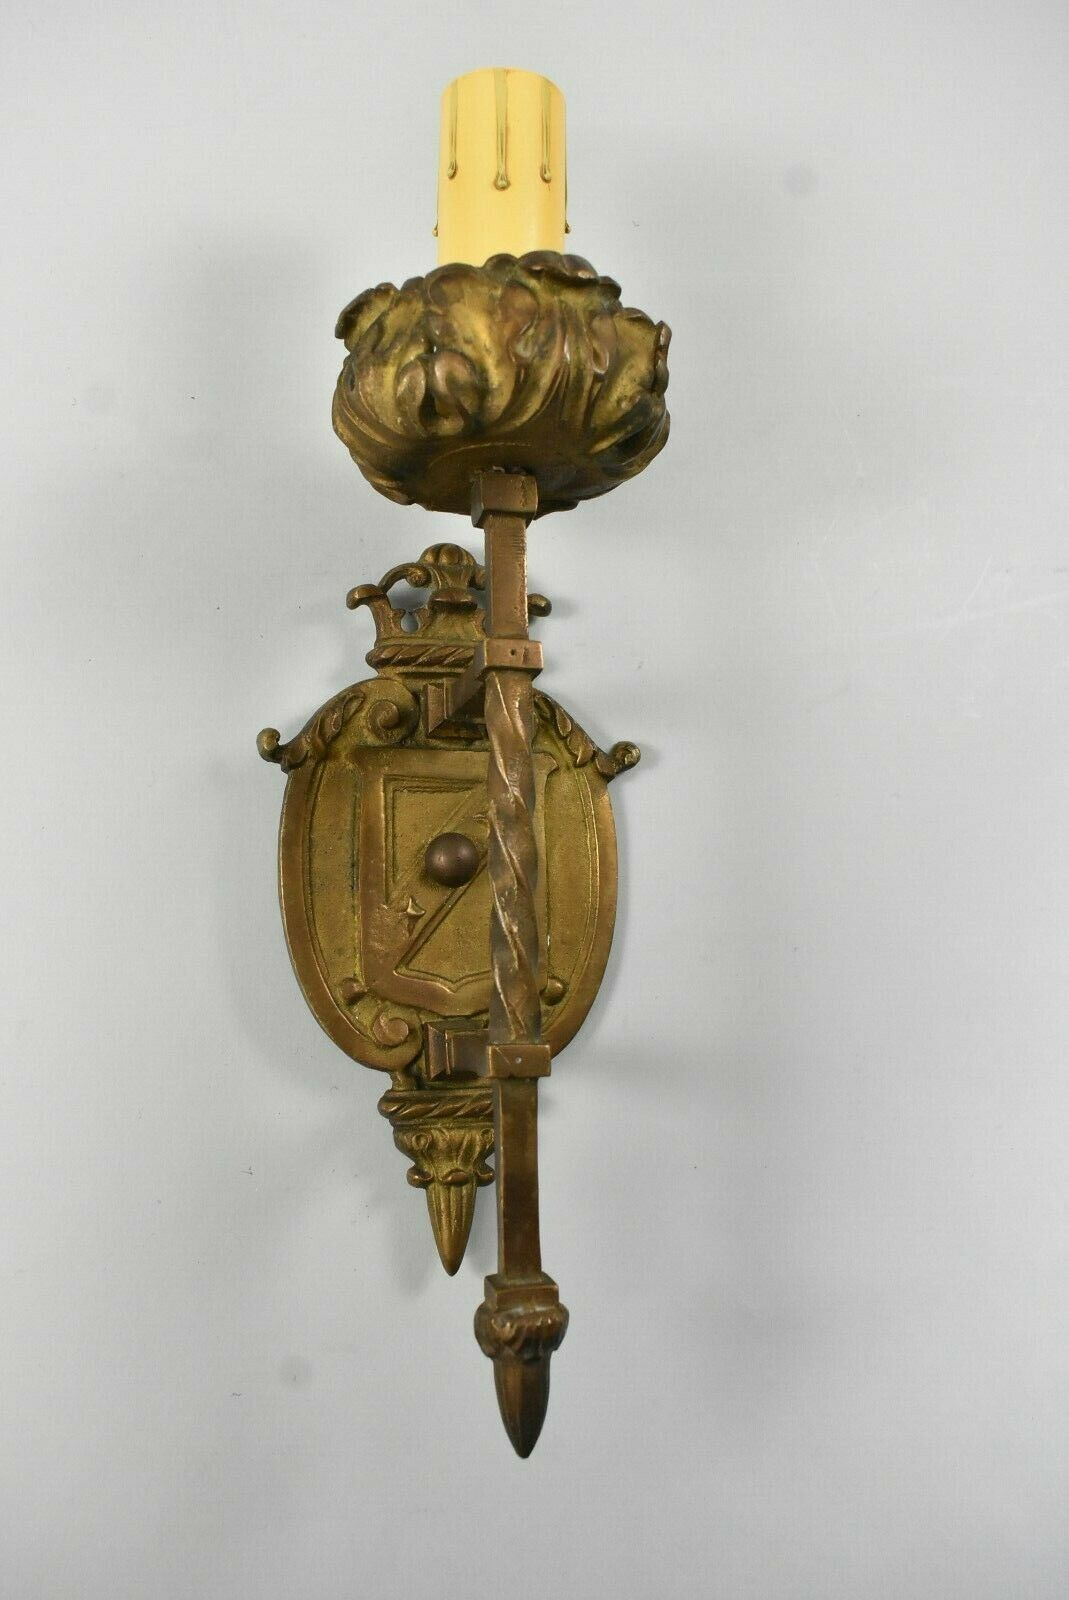 Antique Single Socket Brass Wall Sconce with Twisted Detail and Shield Design